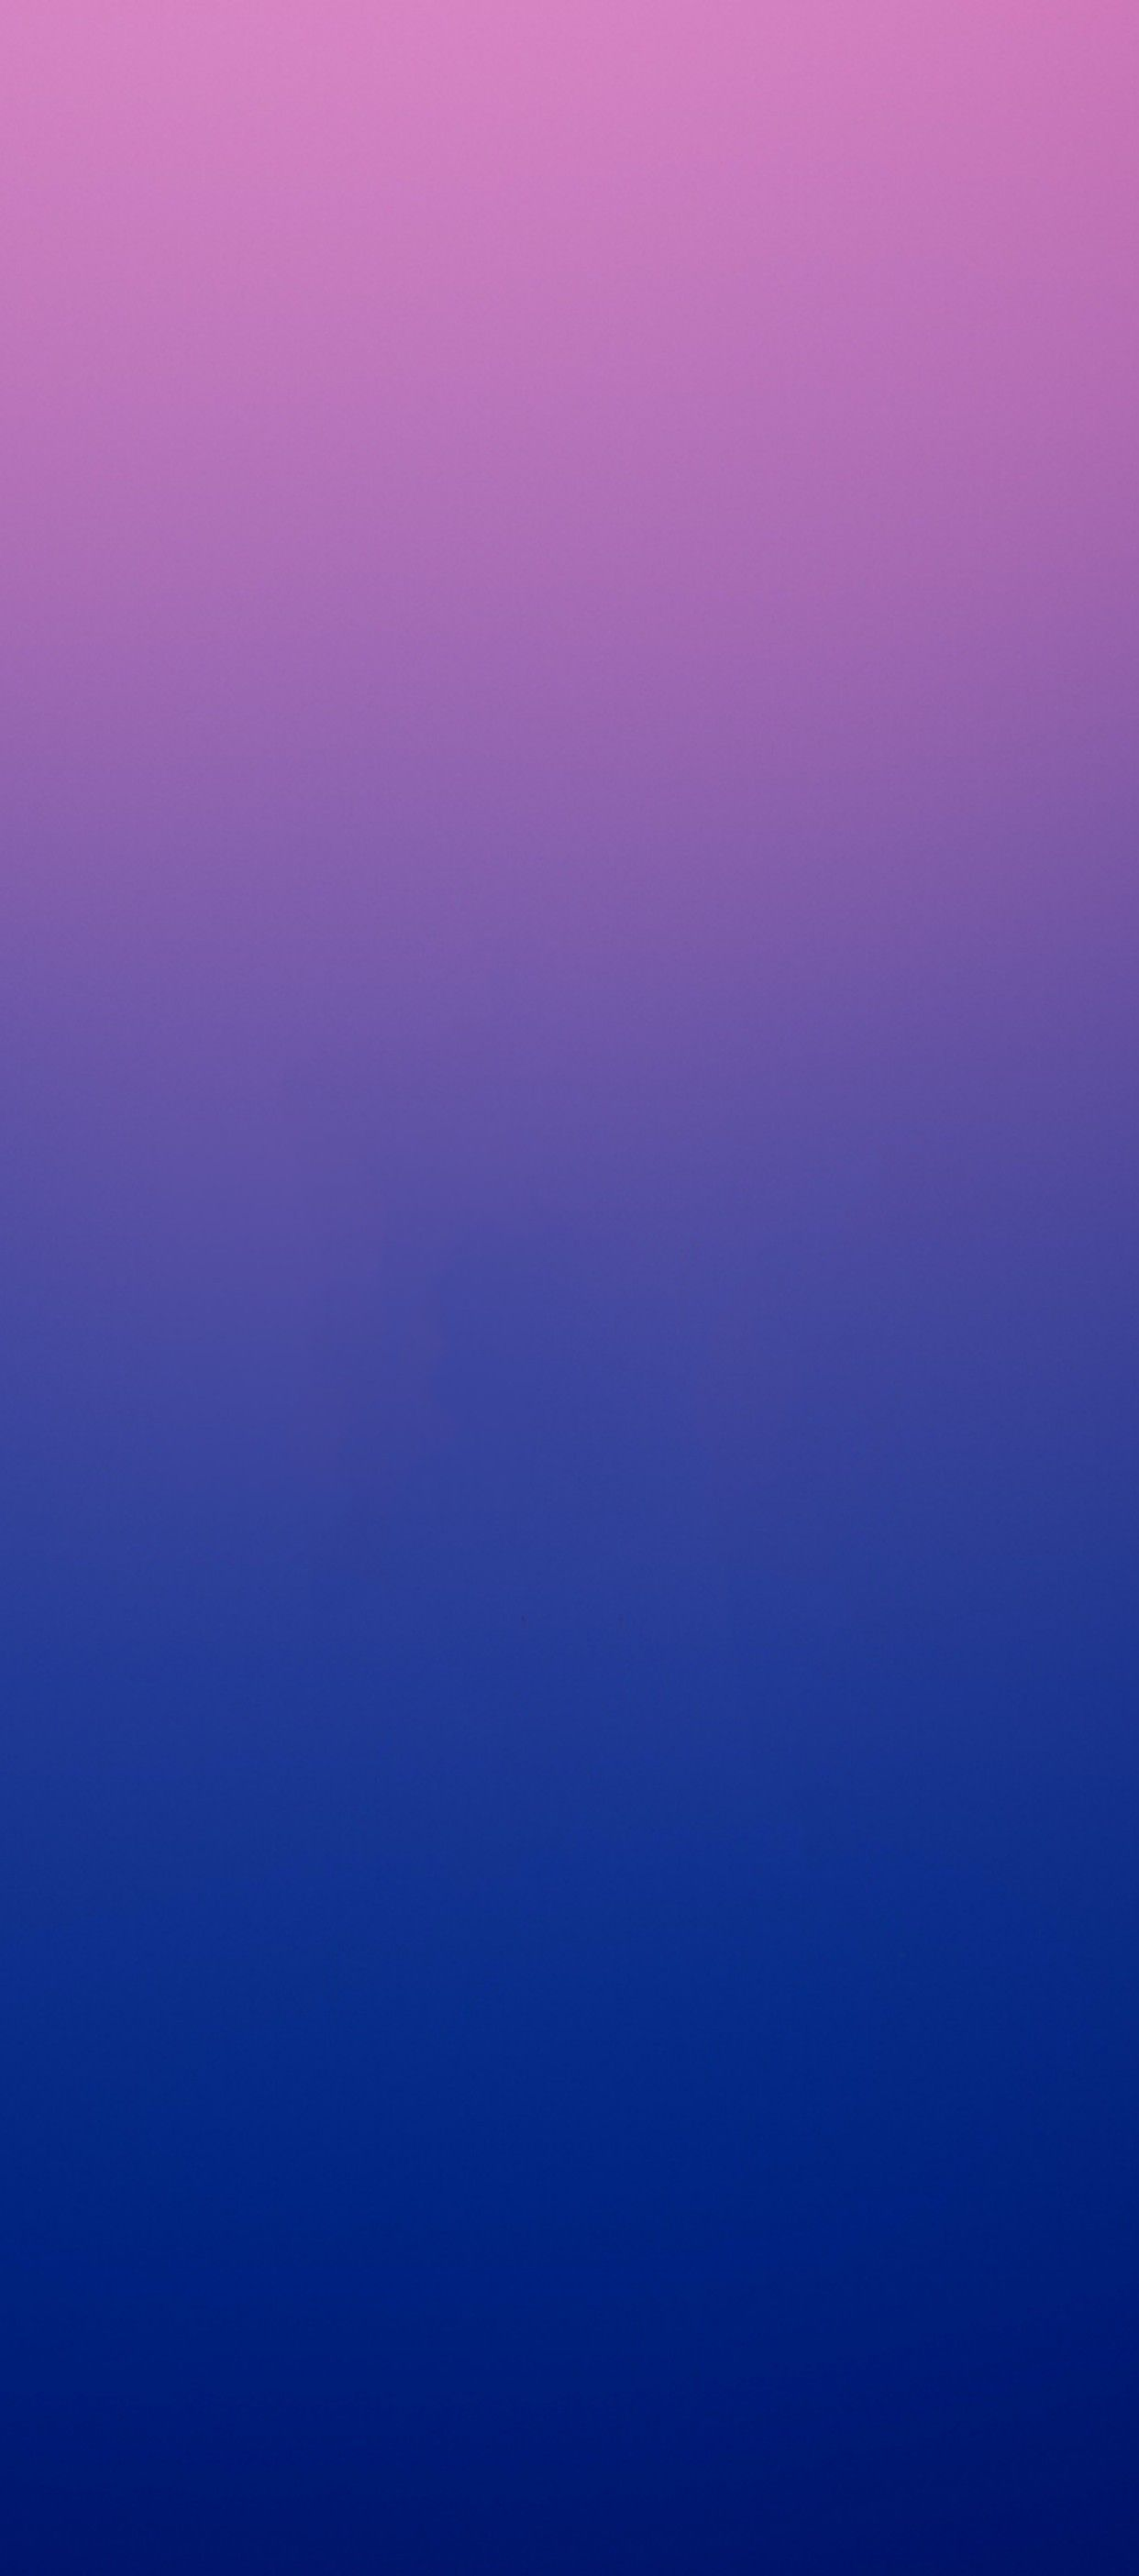 IOS 11 IPhone X Purple Pink Blue Clean Simple Apple Wallpaper Iphone 8 Beauty Colour Minimal